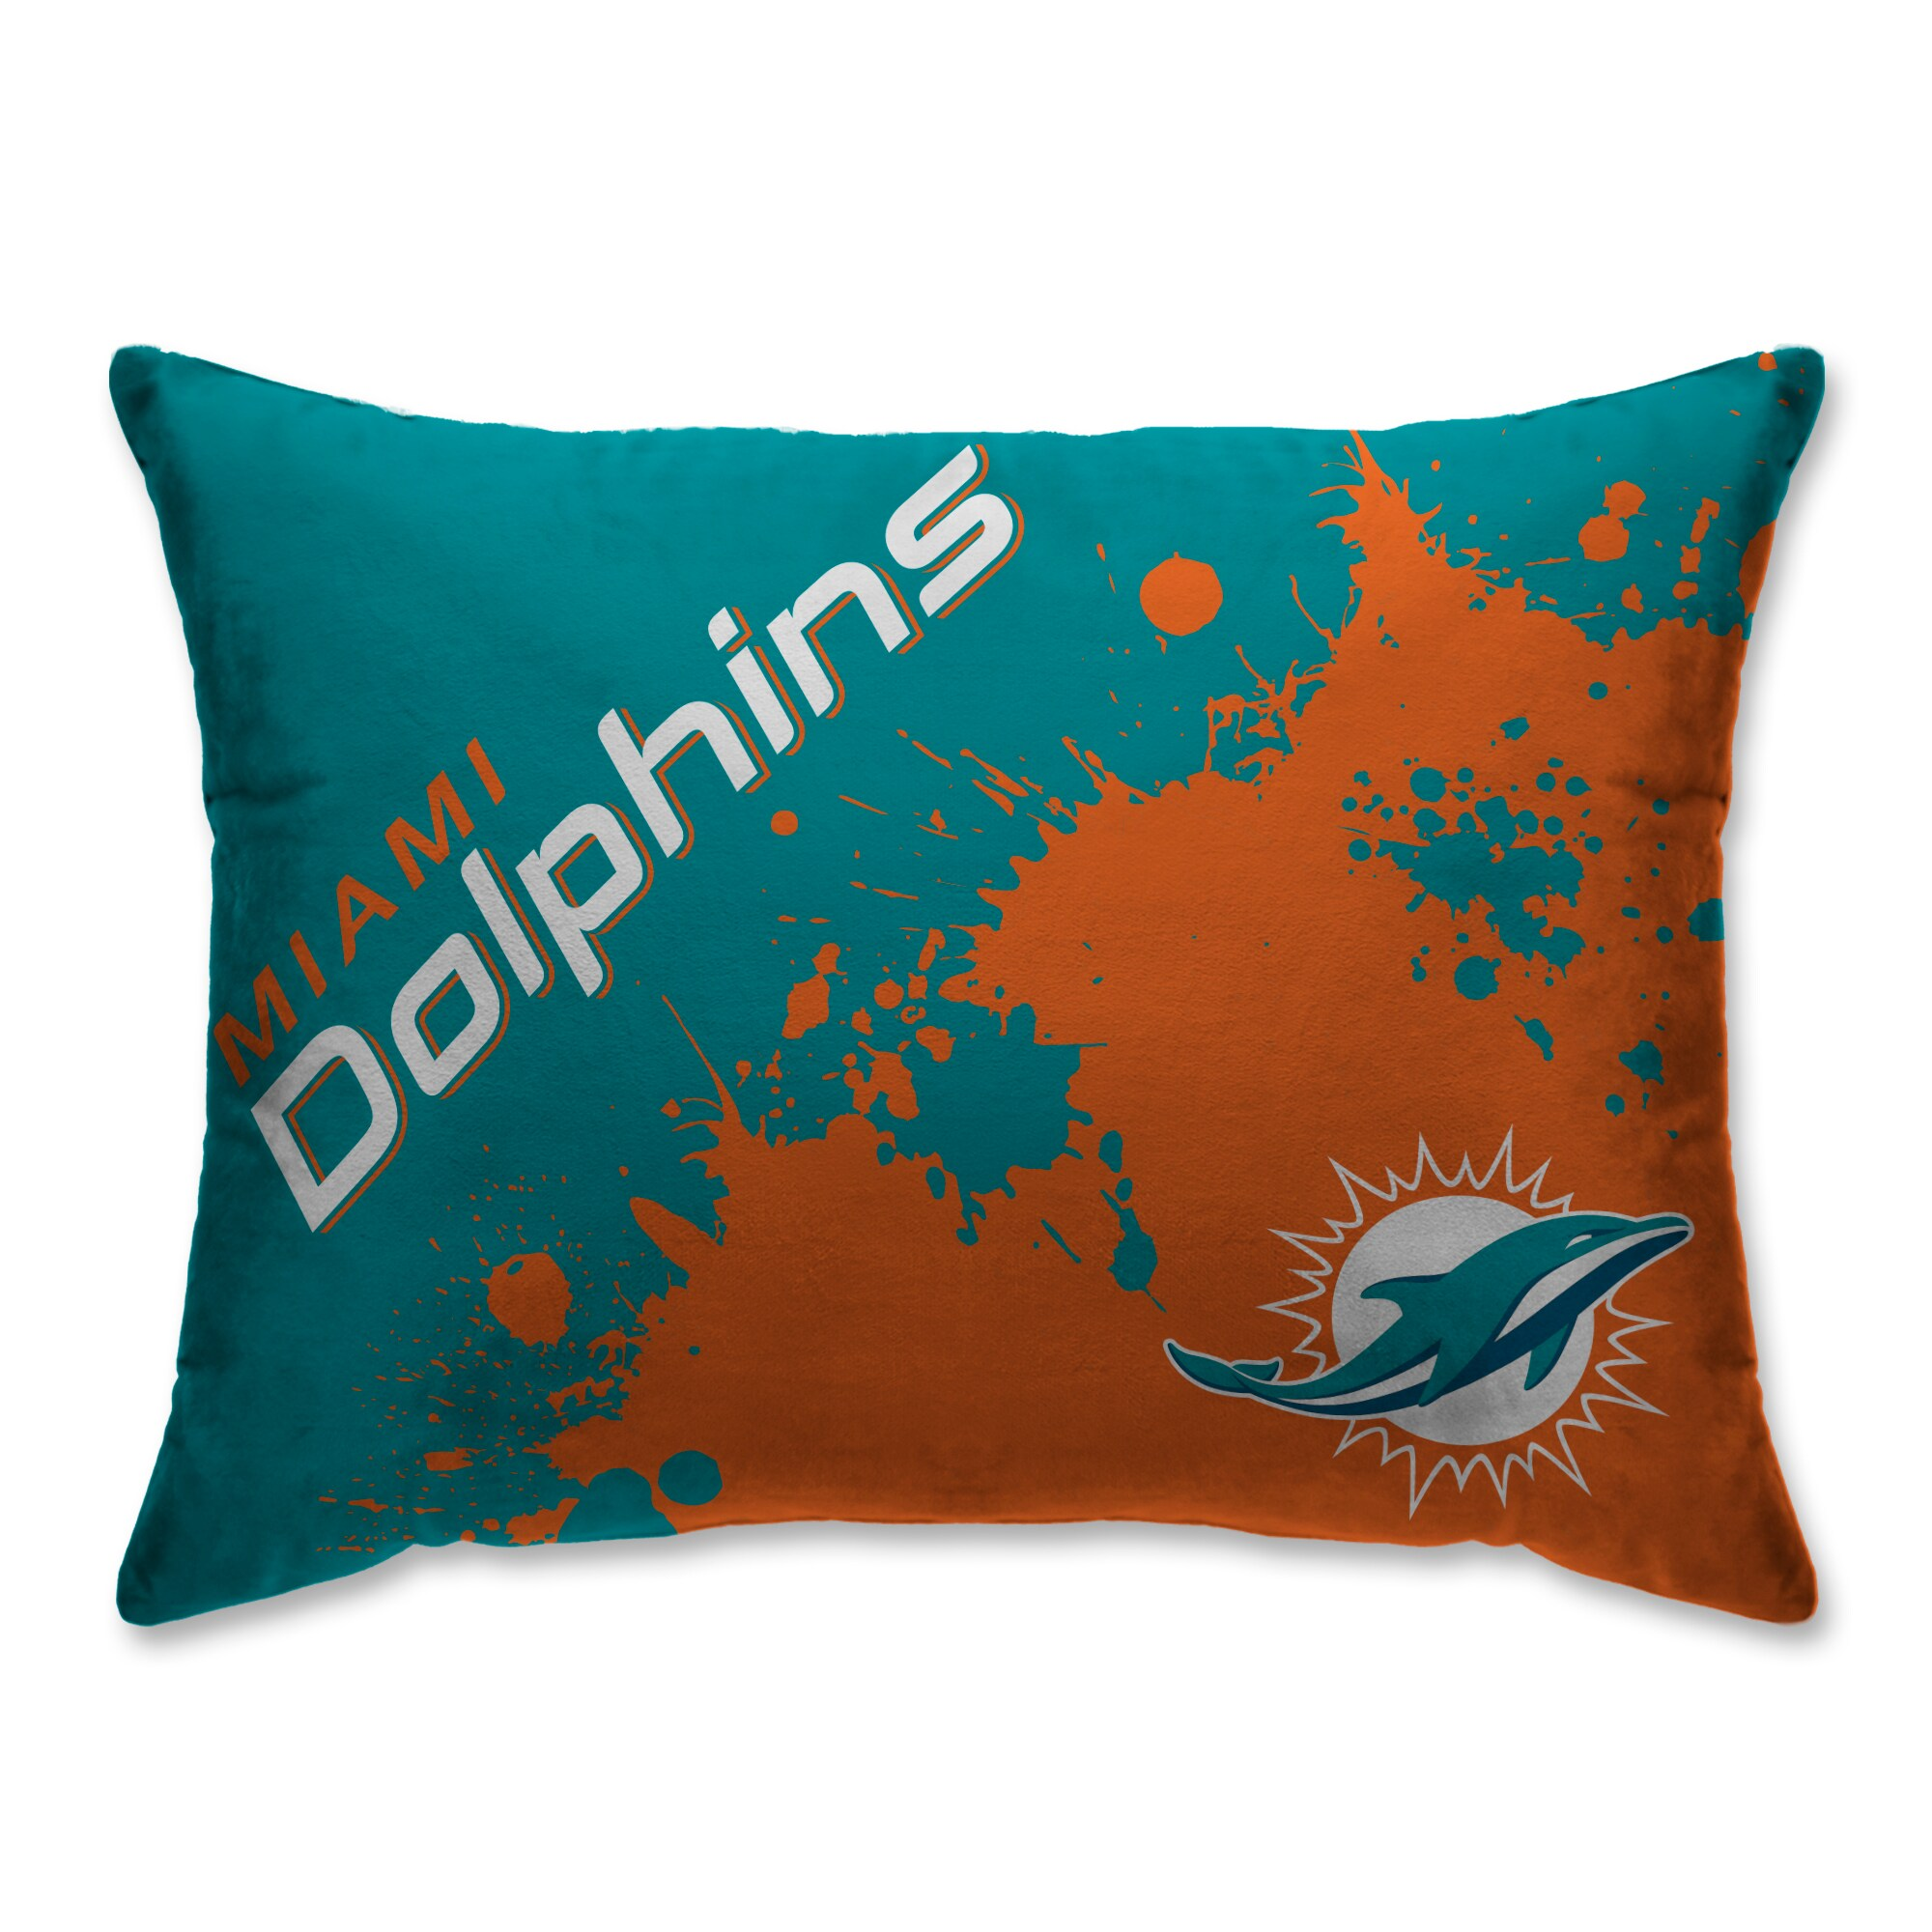 Miami Dolphins Splatter Plush Bed Pillow - Teal